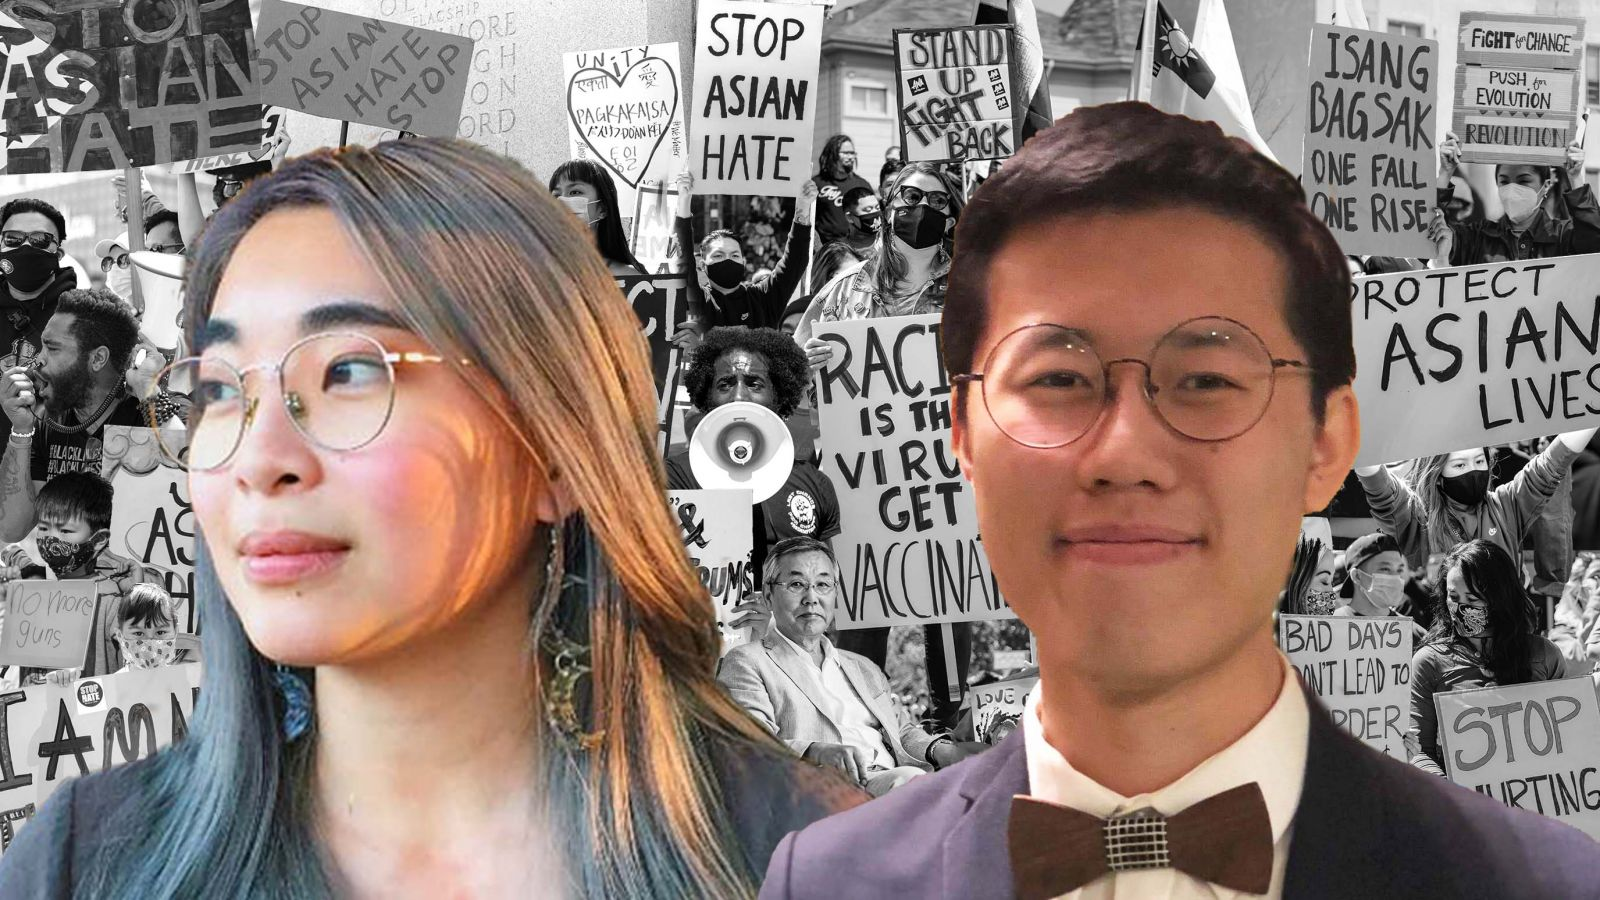 Headshots in colour of Amanda Wan (left) and Patrck Leong (right), layered on top of a black and white collage of diverse people holding signs protesting against anti-Asian racism.